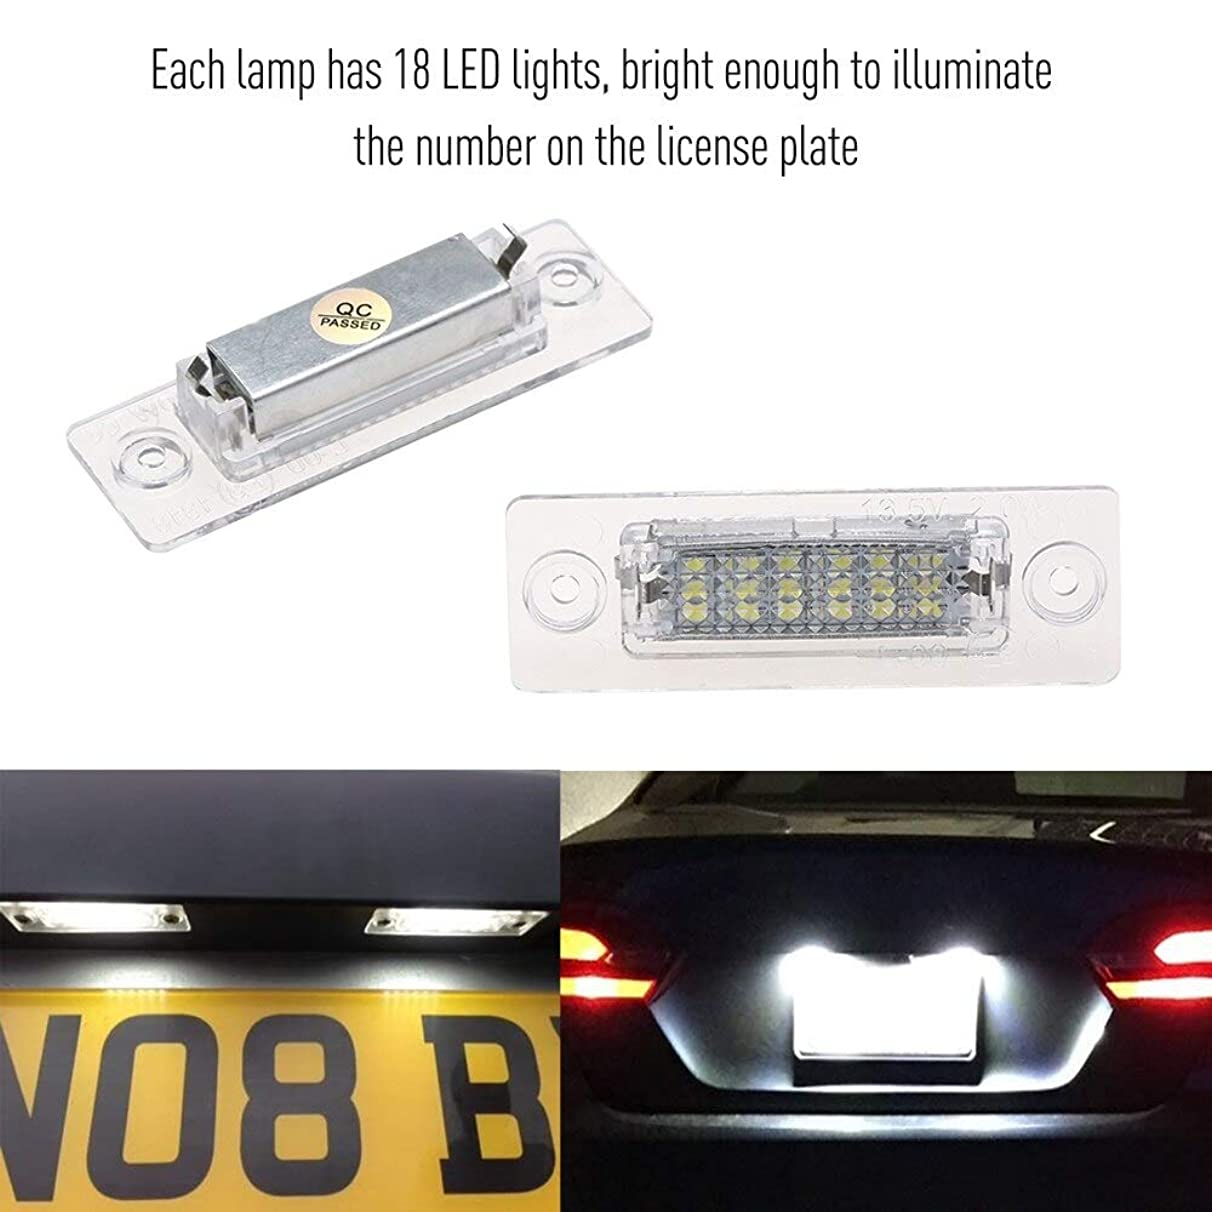 Alina-Shops - LED License Plate Lamp Car License Number Tag Lights for VW Caddy Touran Passat Jetta